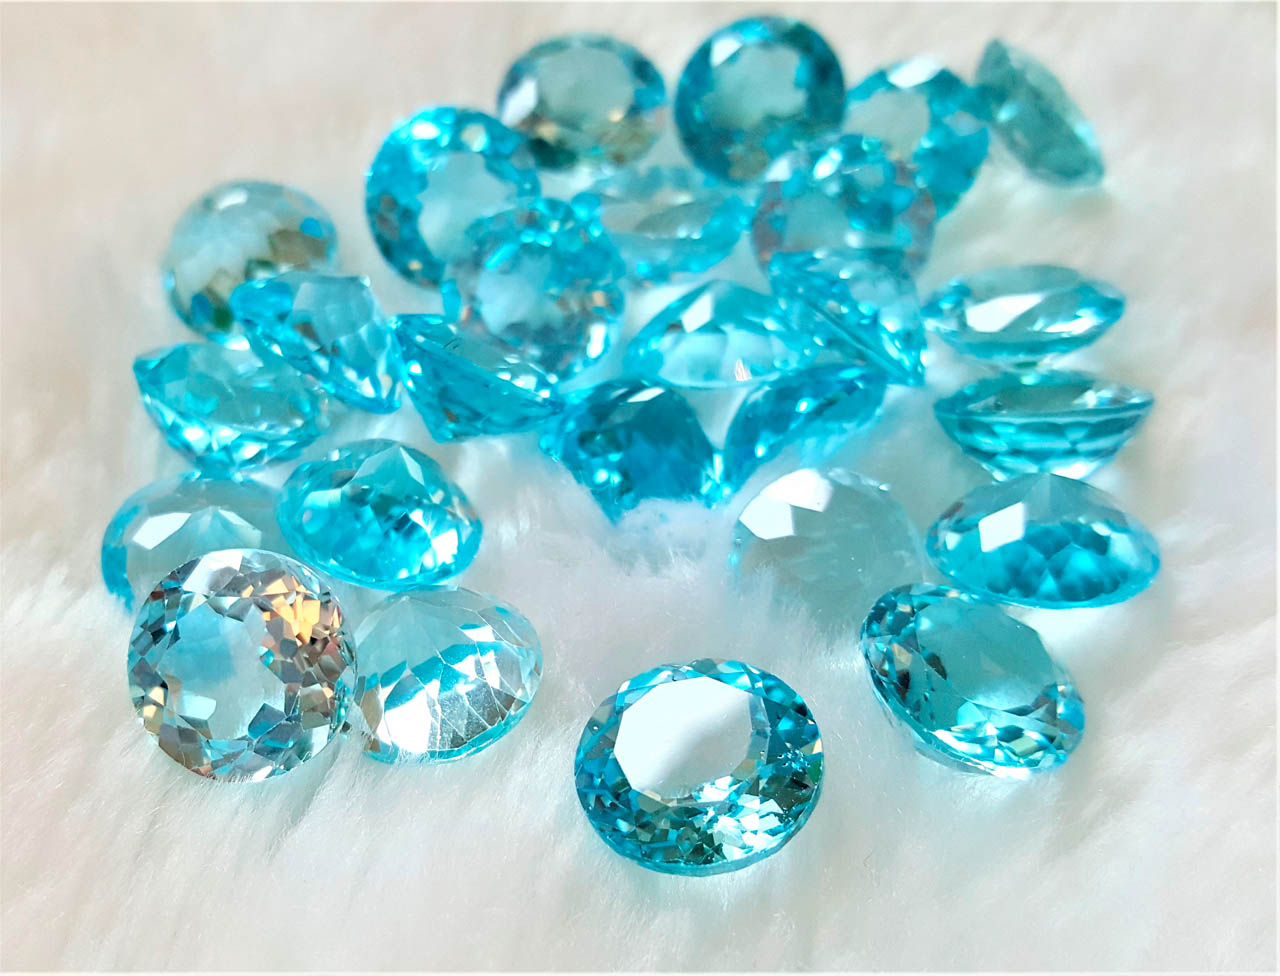 Eliz 2 pcs LOT Loose Blue Topaz Genuine Large 12 mm Natural Blue Topaz Round Cut Stone Faceted Precious Gemstones Sky Blue Topaz